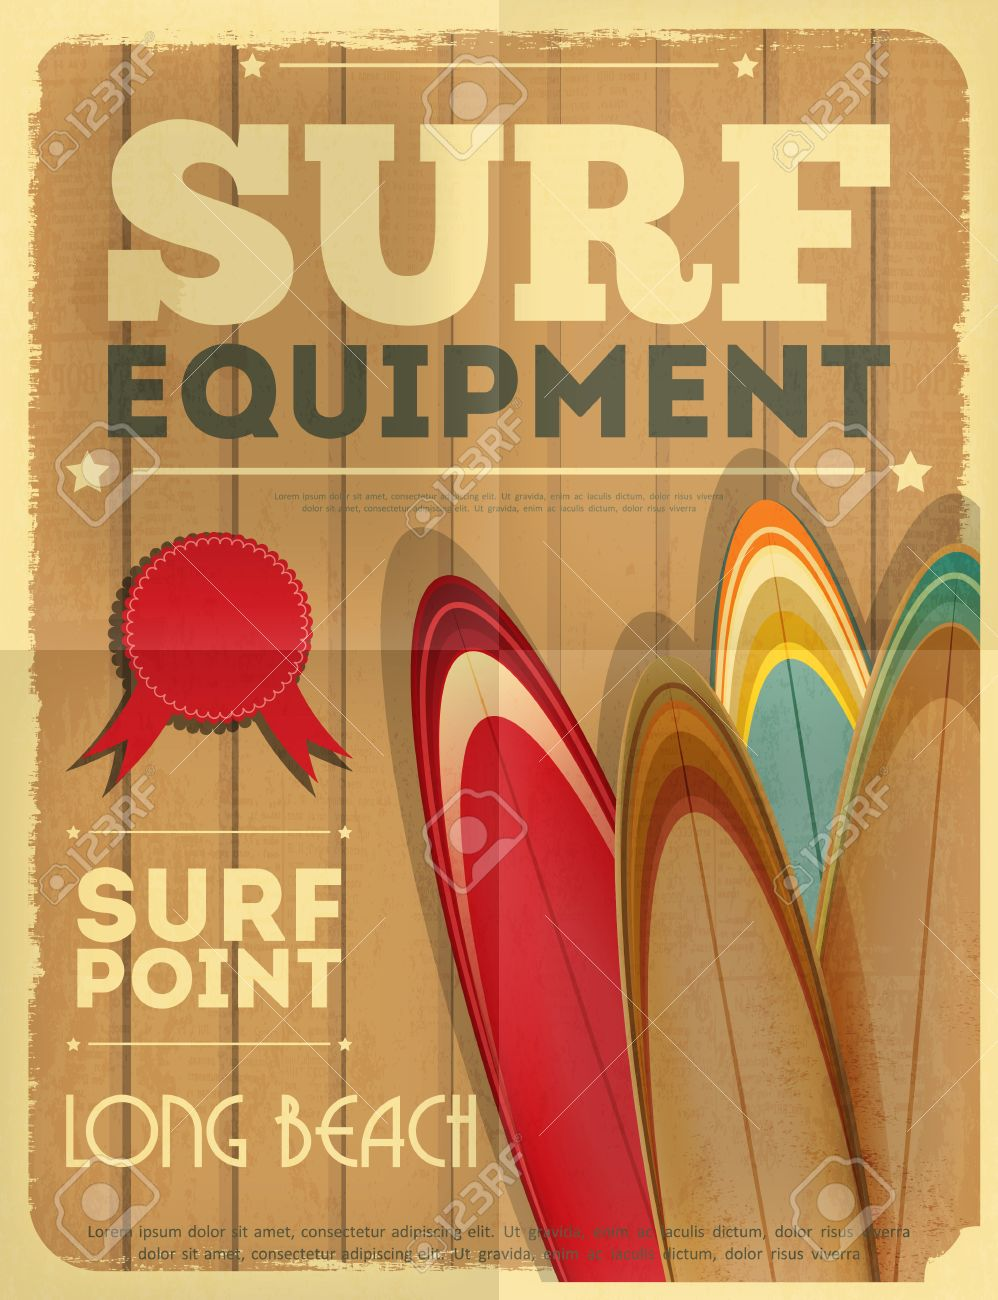 Design poster retro - Surf Retro Poster With Surfboards In Vintage Design Style Vector Illustration Stock Vector